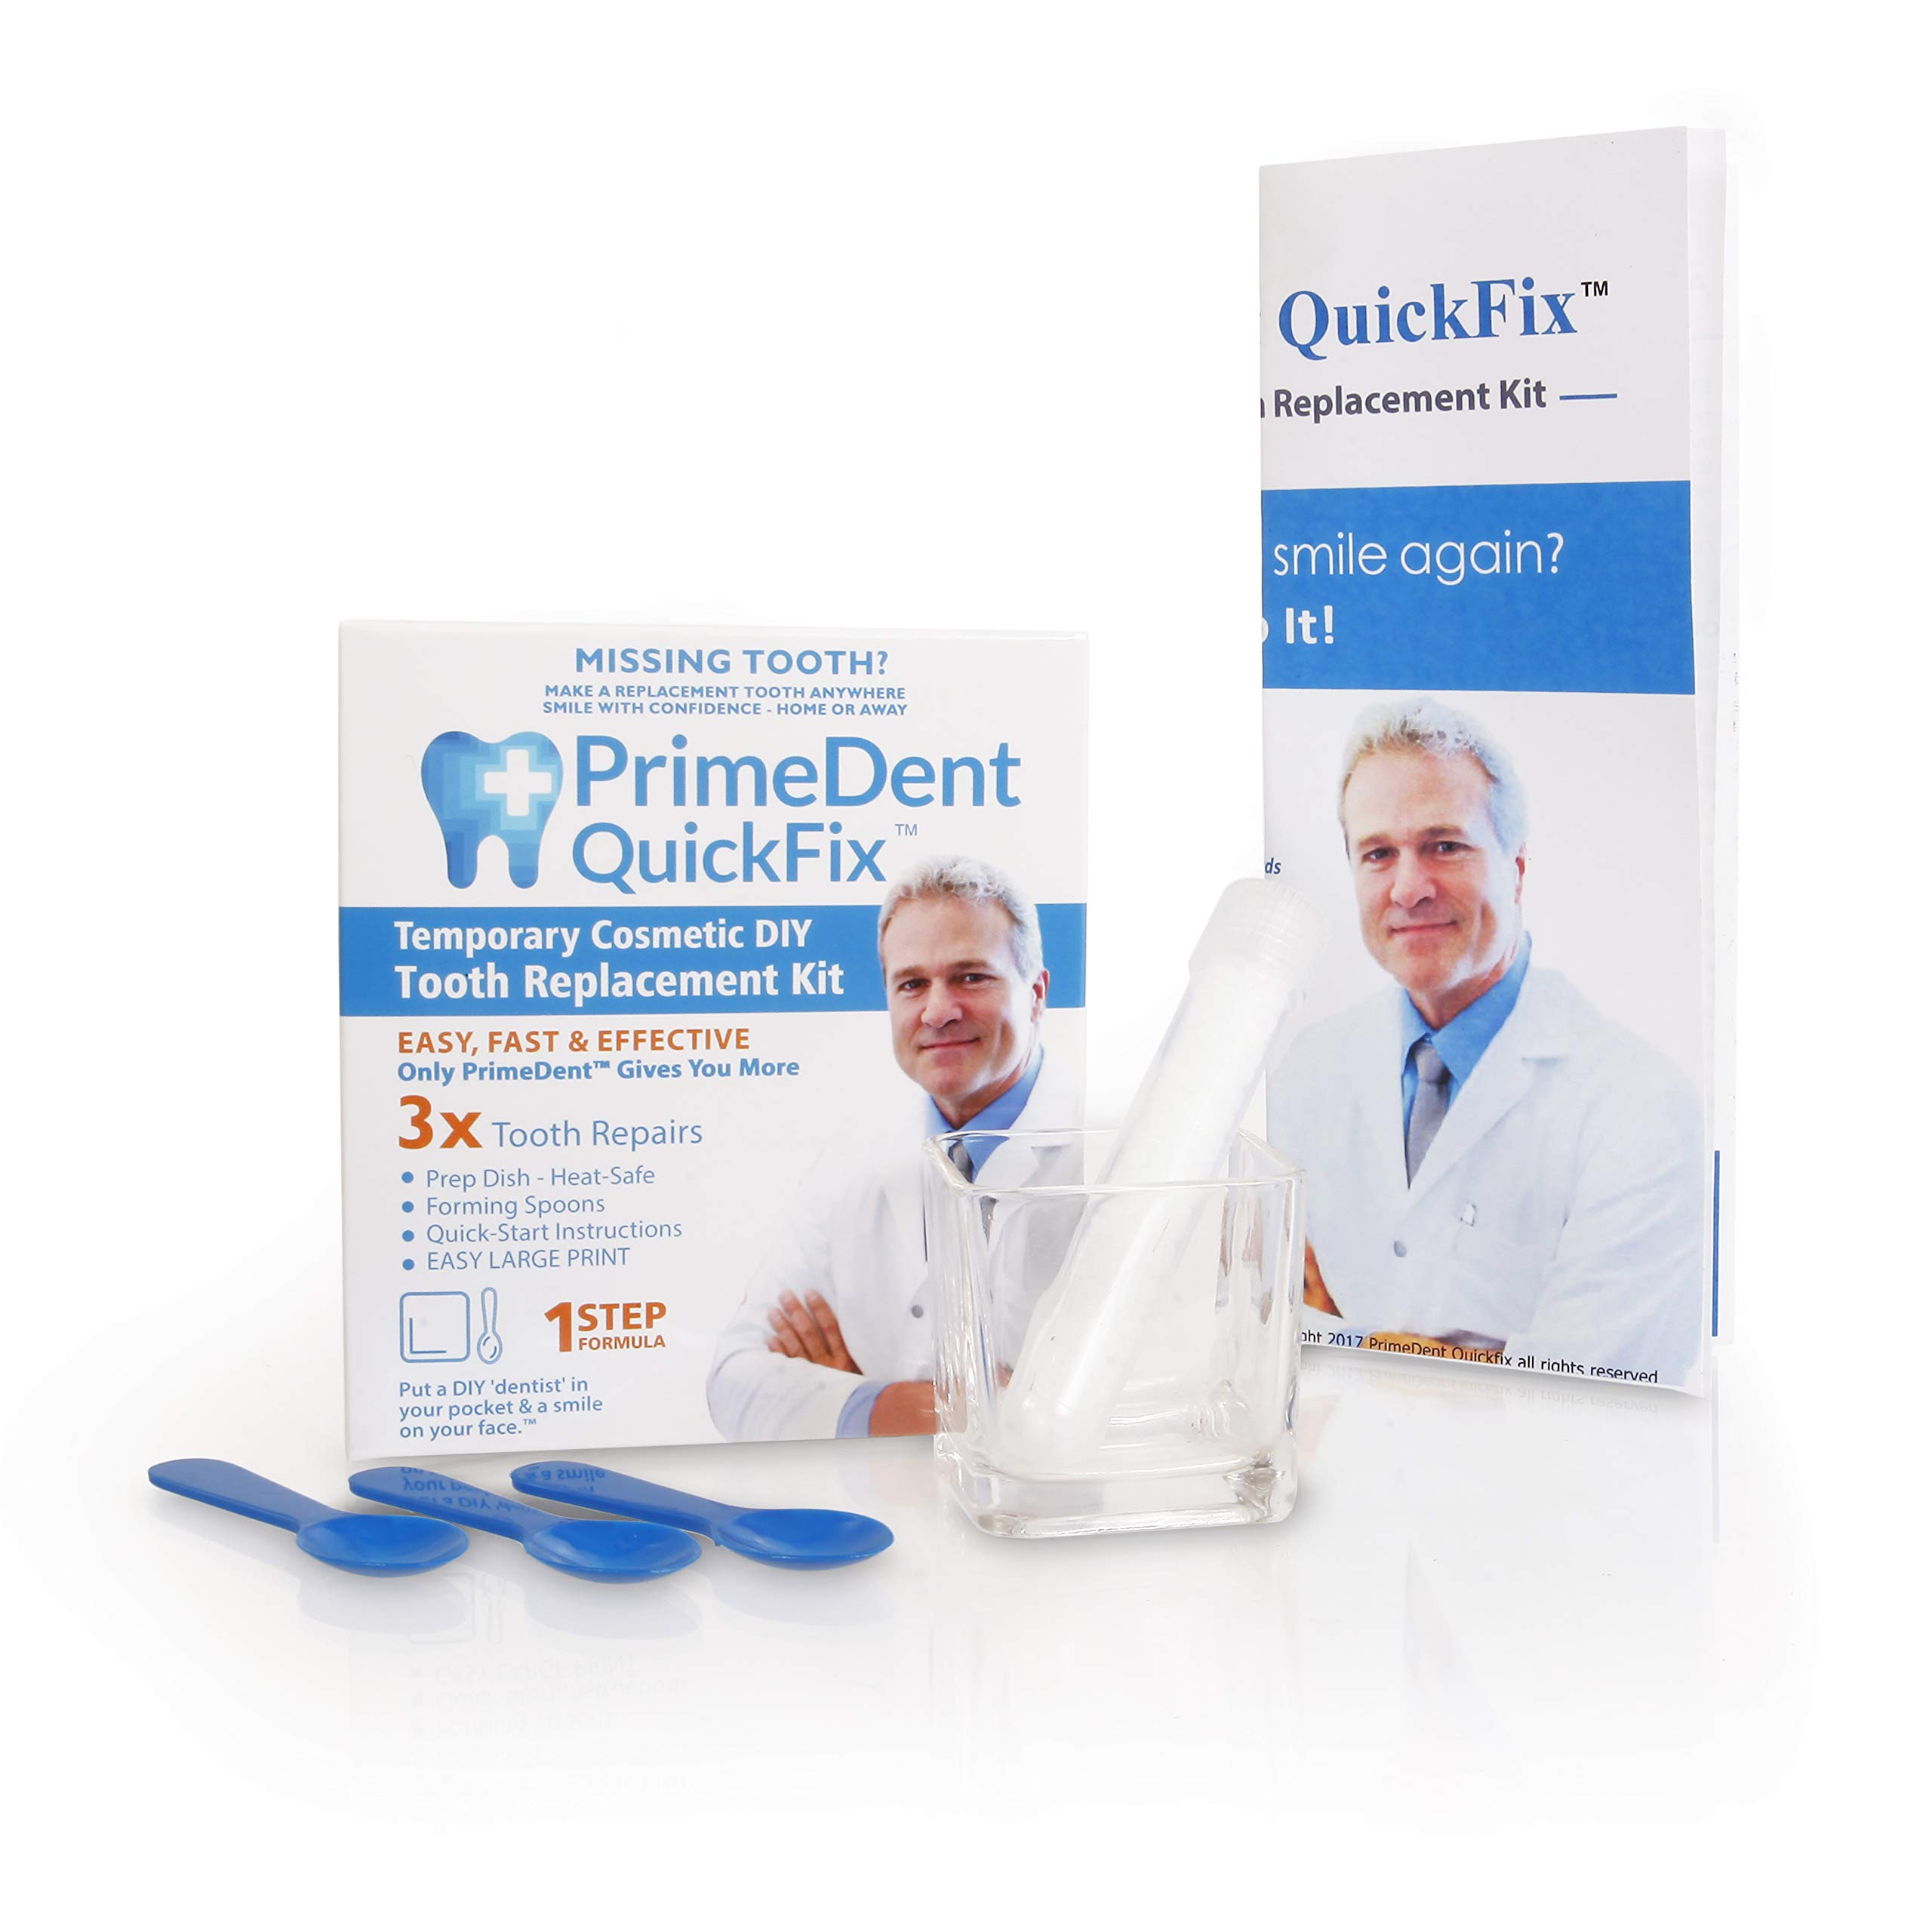 PrimeDent QuickFix #1 Temp for Missing Tooth Temporary Replacement Looks Real - (Material for 30 teeth, mixing dish, forming spoons)